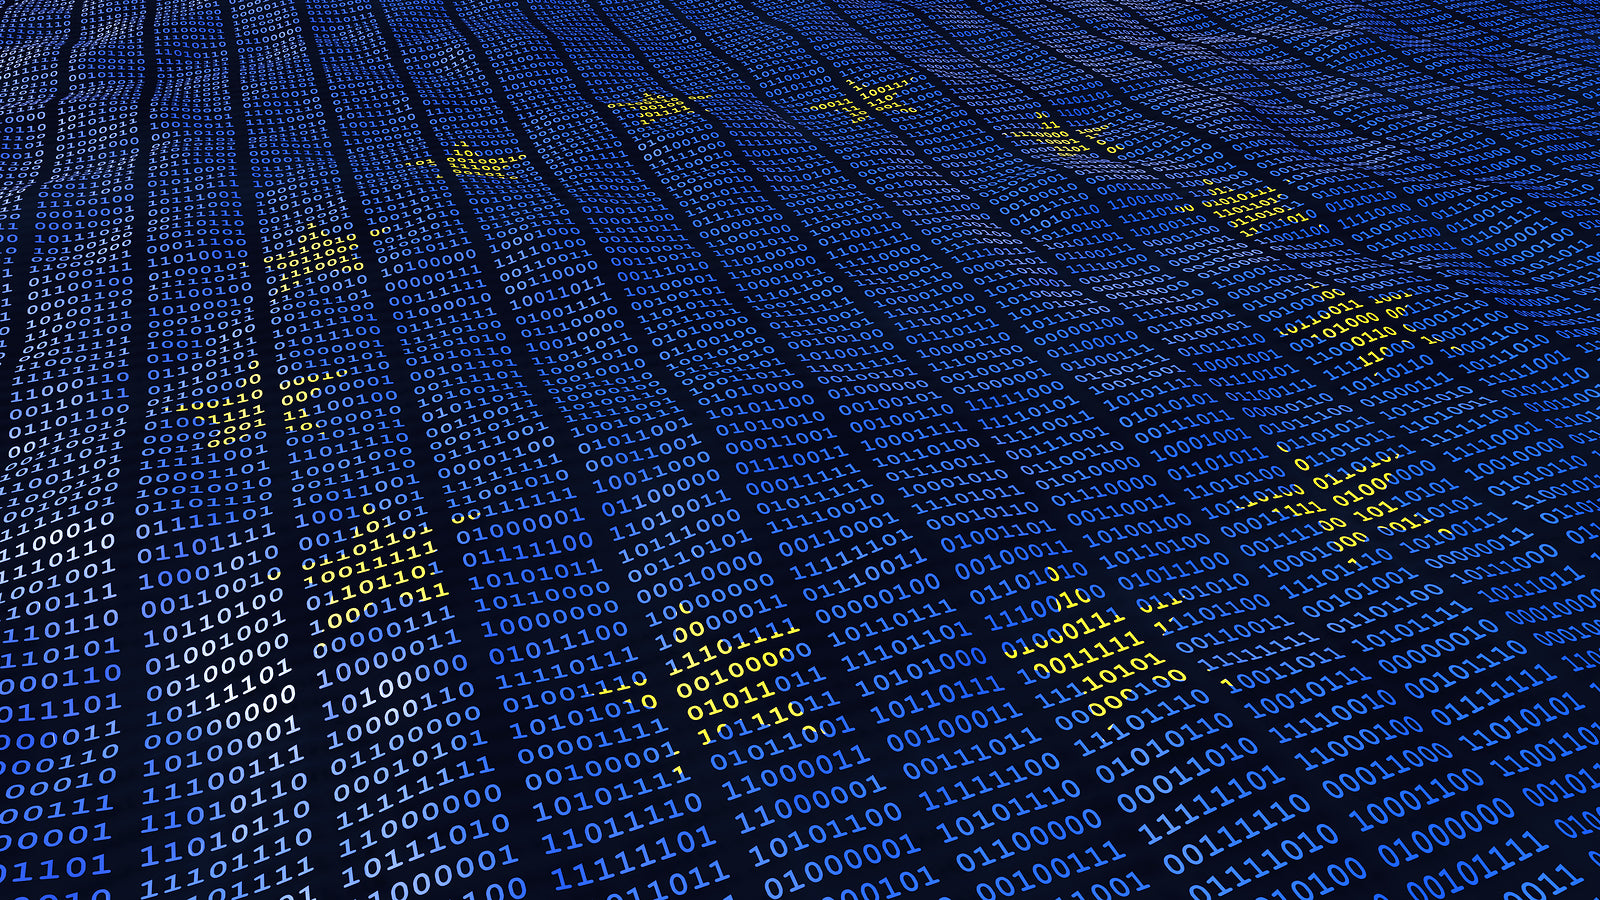 Over 59,000 data breaches reported in Europe since GDPR